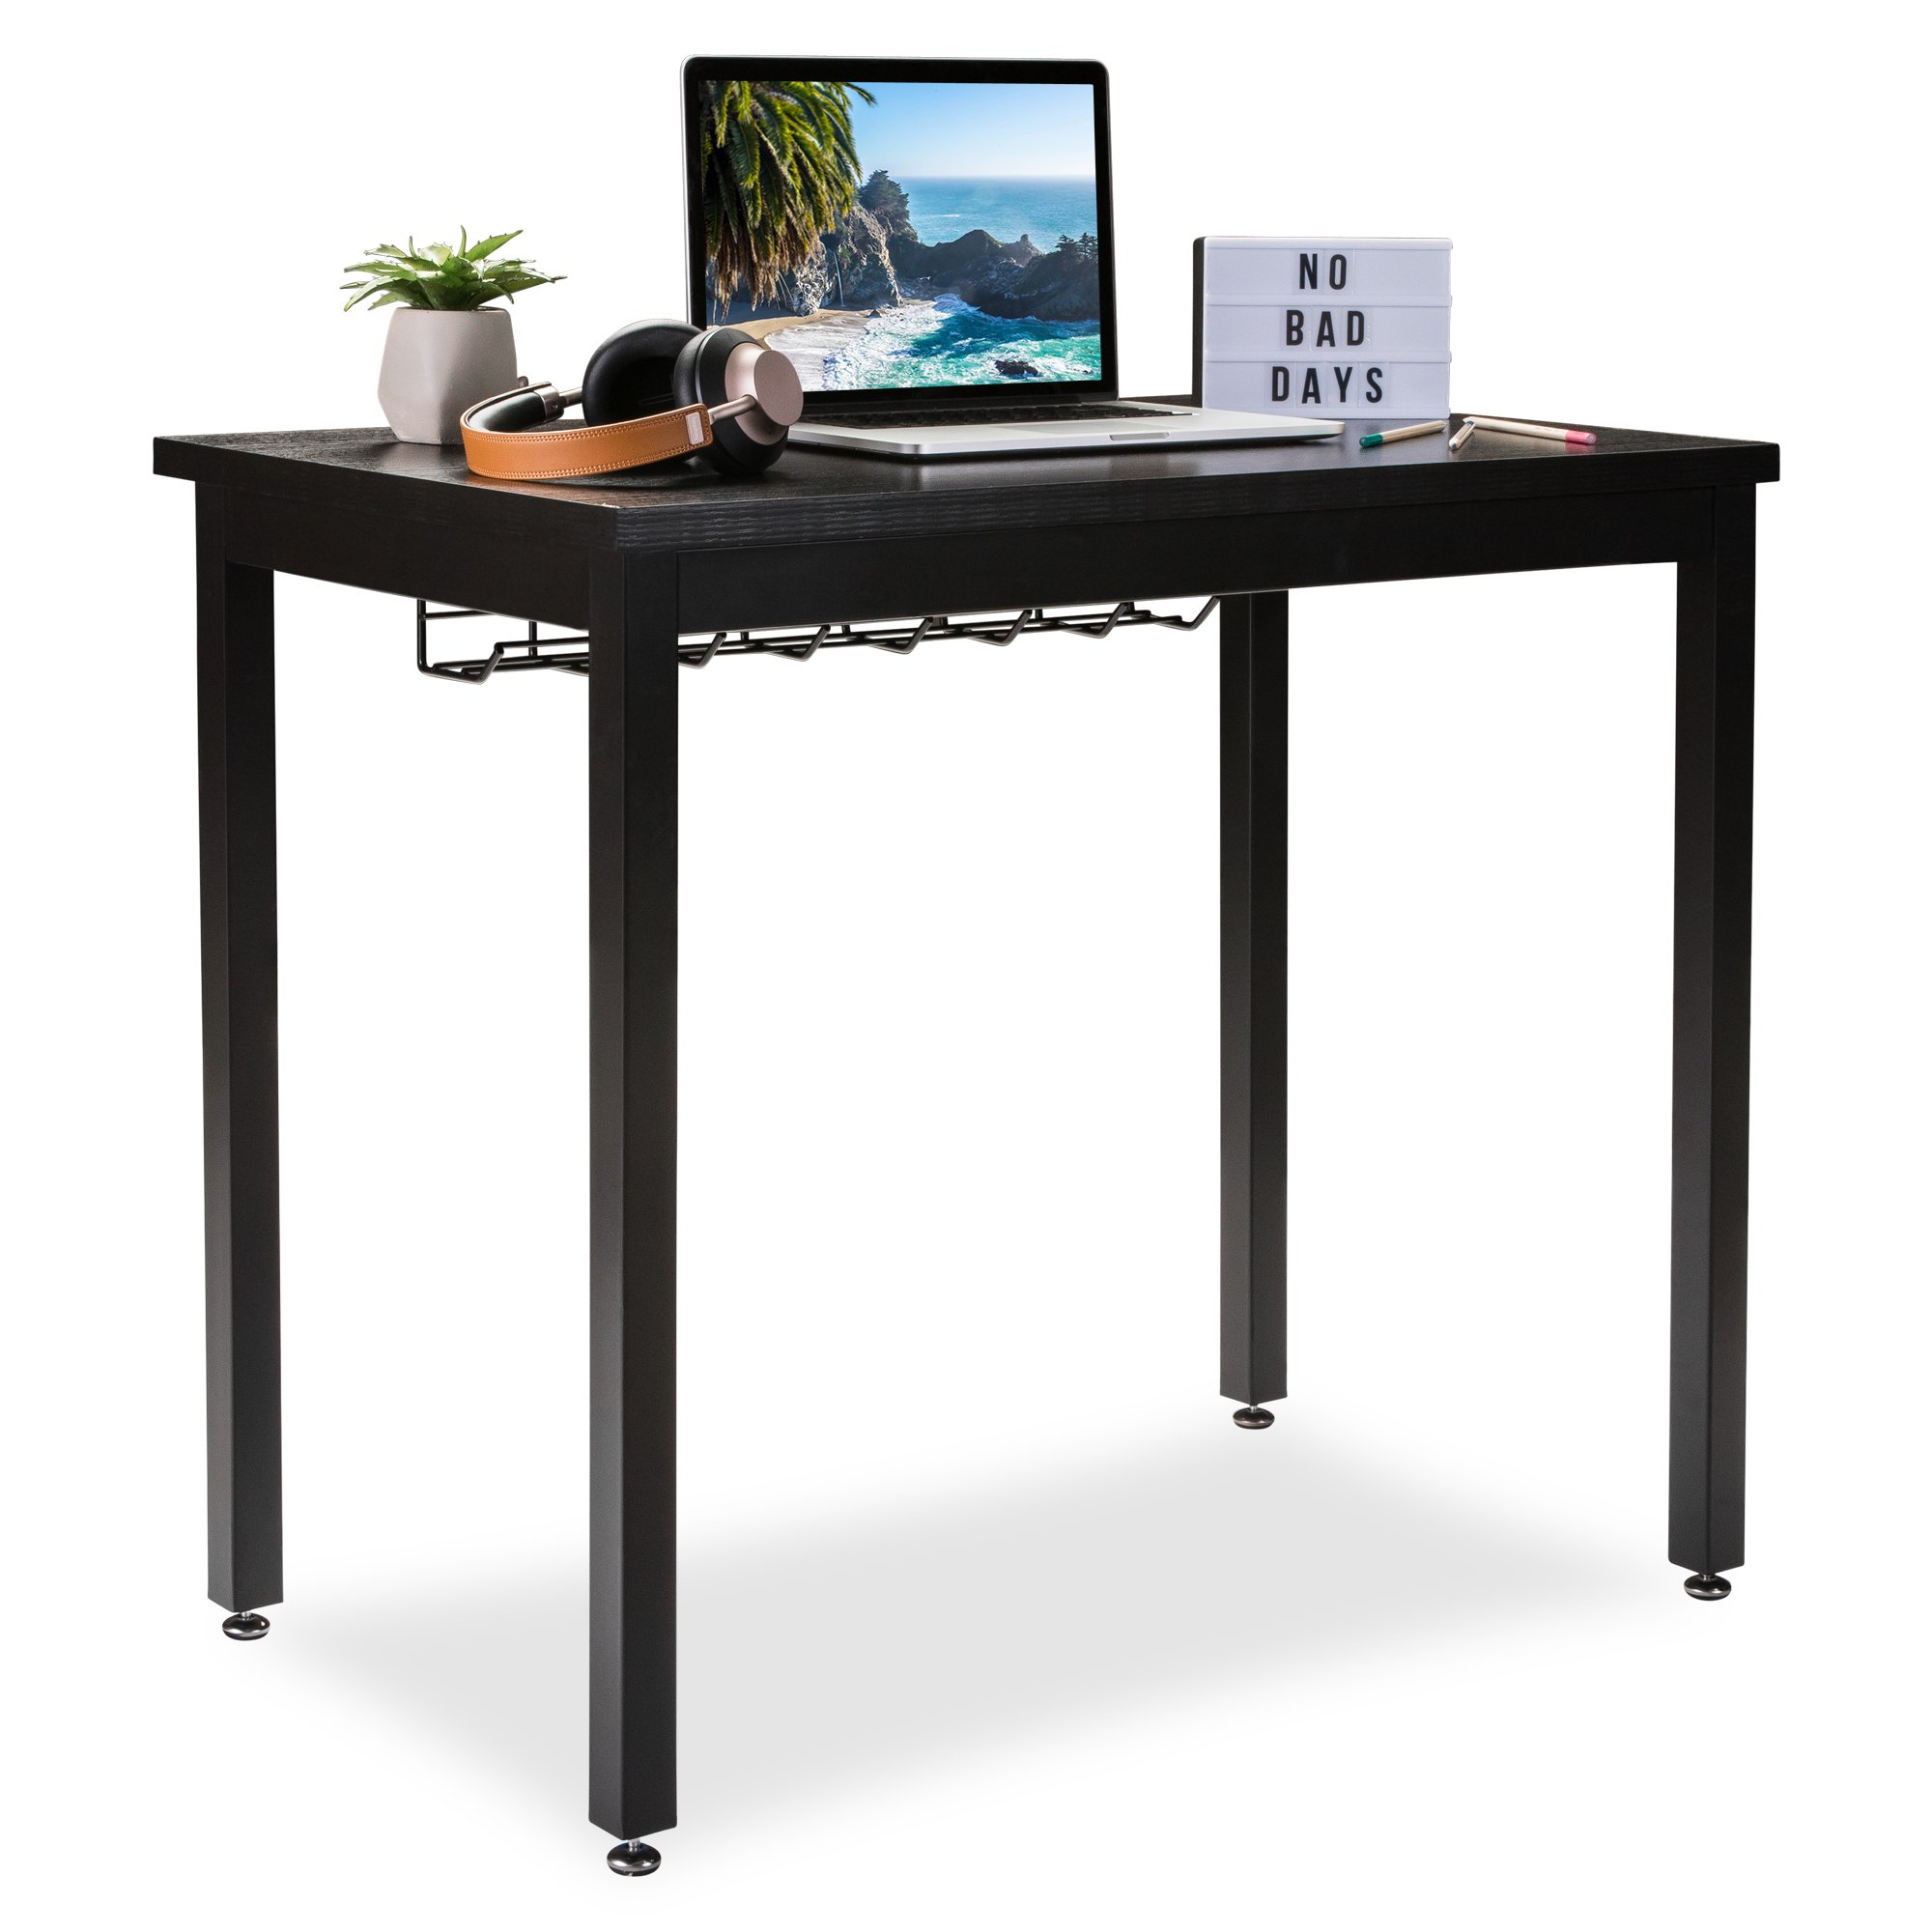 """Small Computer Desk for Home Office - 36"""" Length Table w/Cable Organizer- Sturdy and Heavy Duty Writing Desk for Small Spaces and Students Laptop Use - Damage-Free Promise (Black)"""